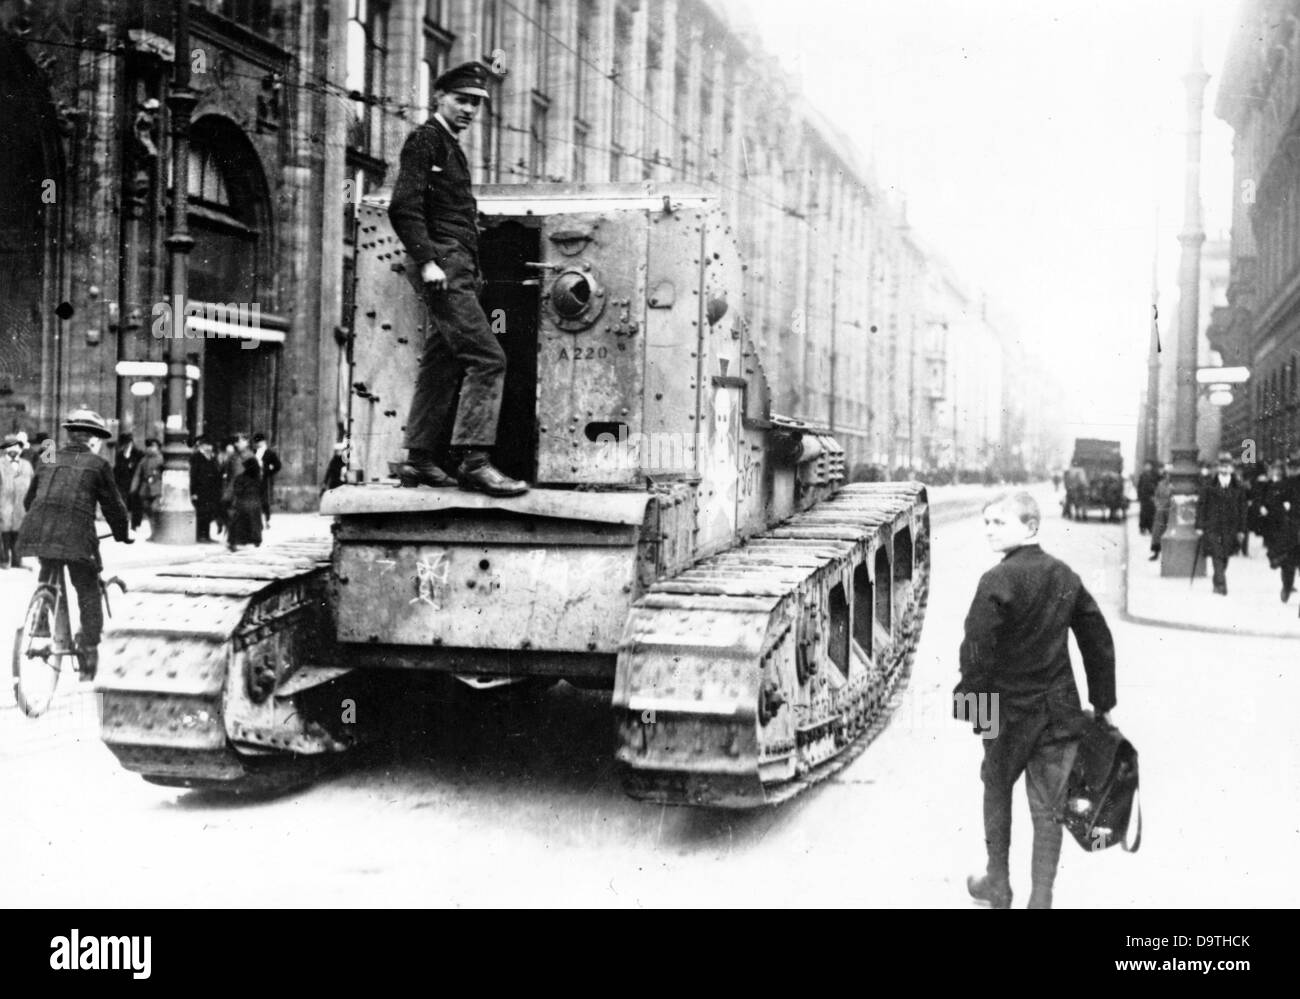 german revolution 1918 1919 tanks are pictured in leipziger strasse stock photo royalty free. Black Bedroom Furniture Sets. Home Design Ideas